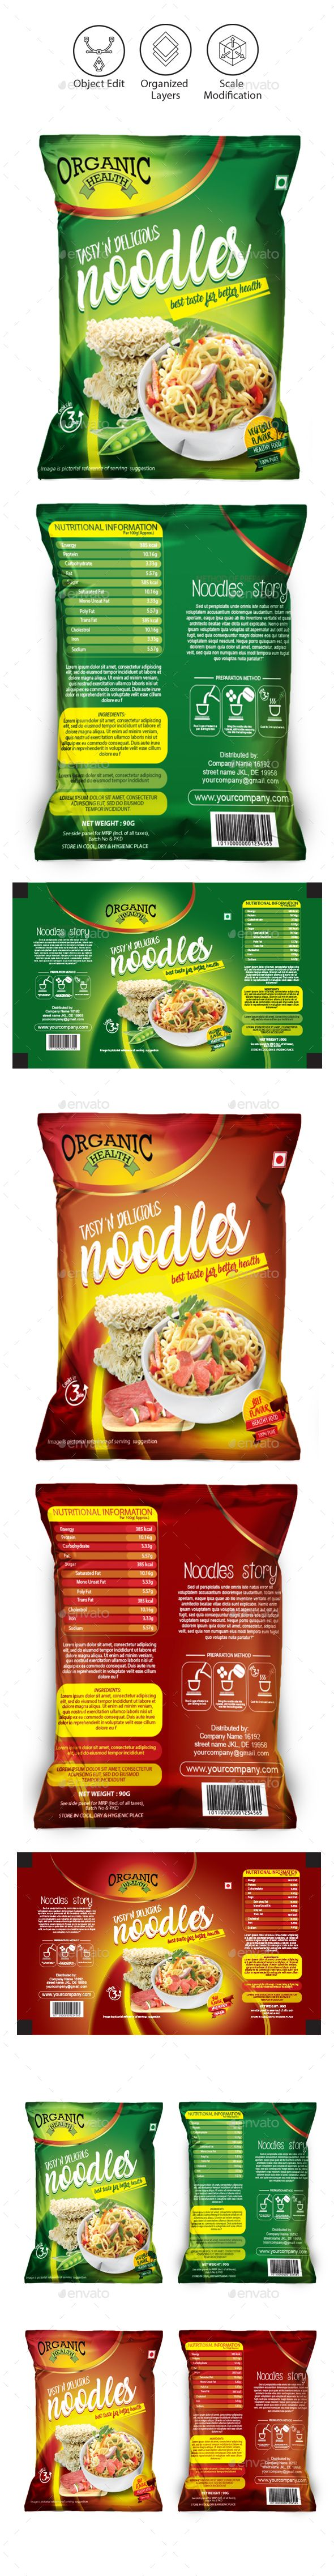 Noodles Packaging Templates — Vector EPS #mie #packaging • Download ➝ https://graphicriver.net/item/noodles-packaging-templates/18917516?ref=pxcr